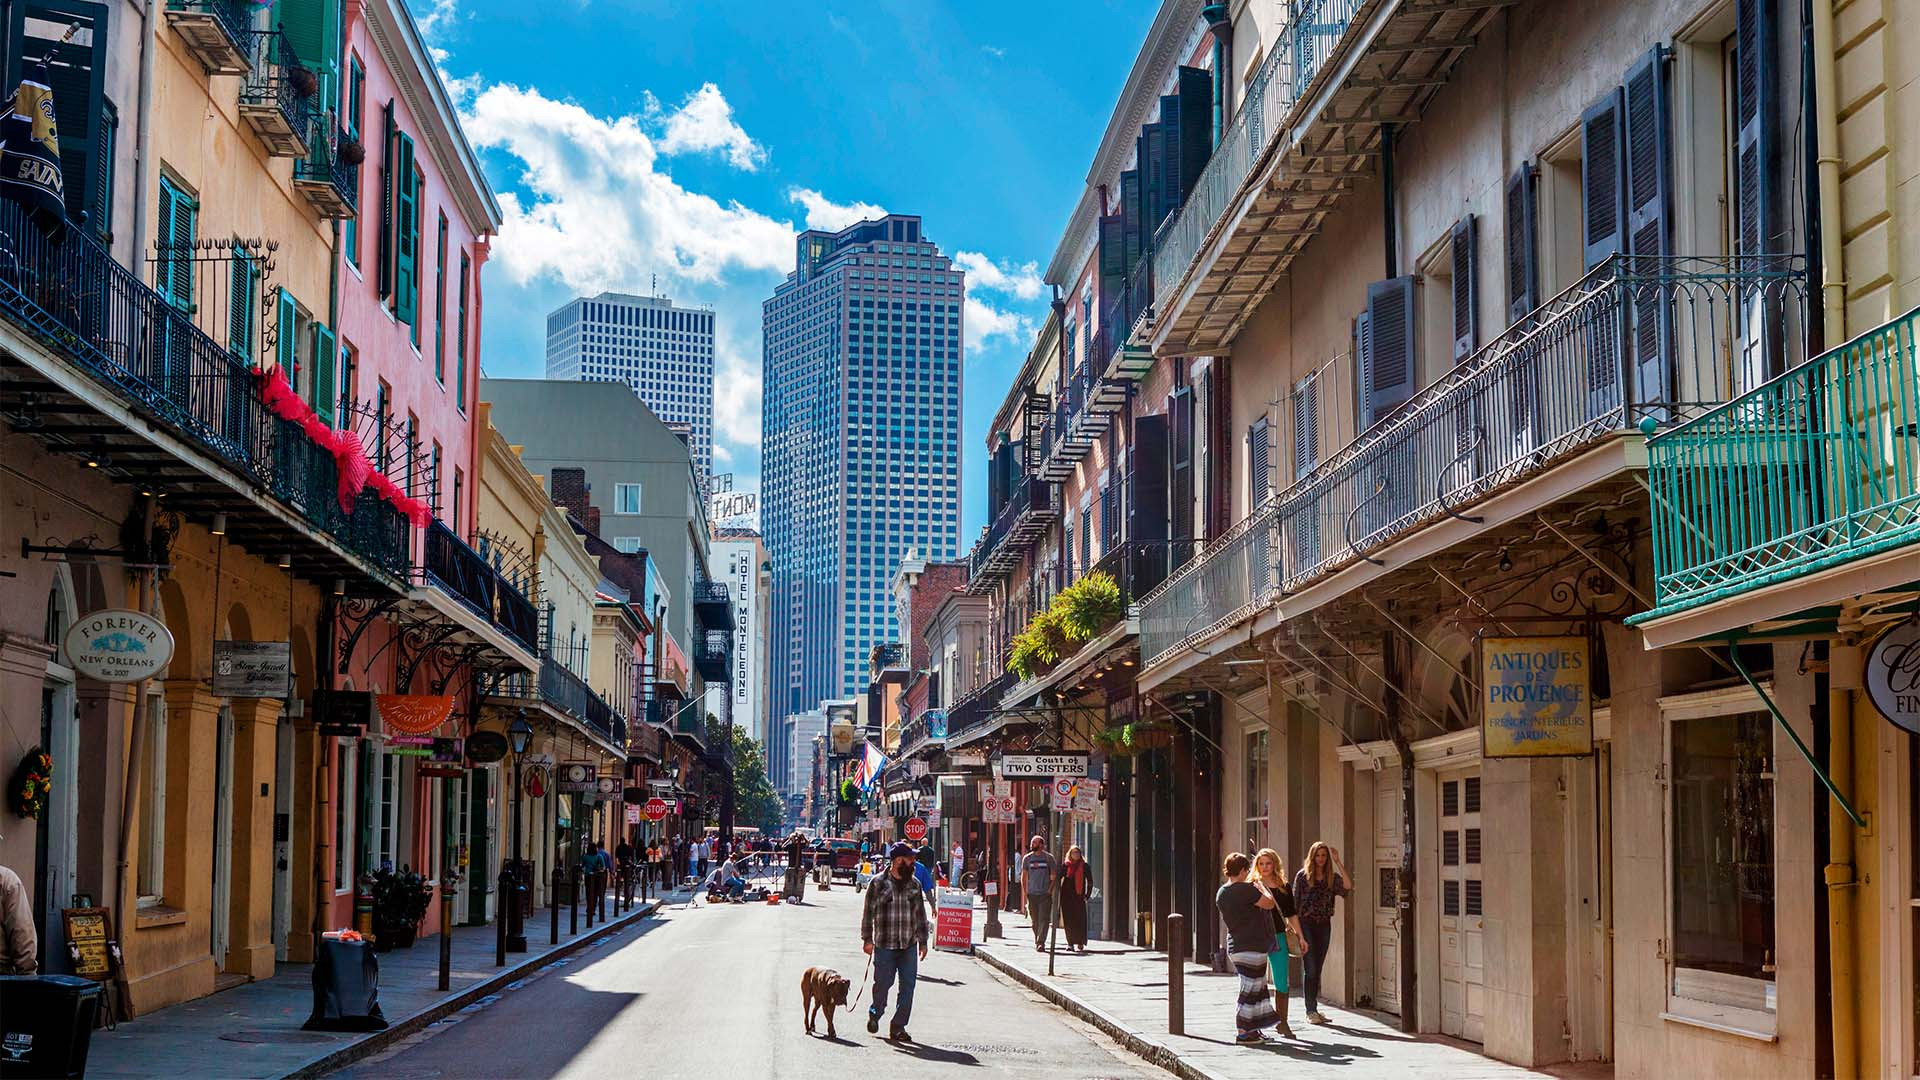 Royal Street looking towards downtown, French Quarter, New Orleans, Louisiana, USA